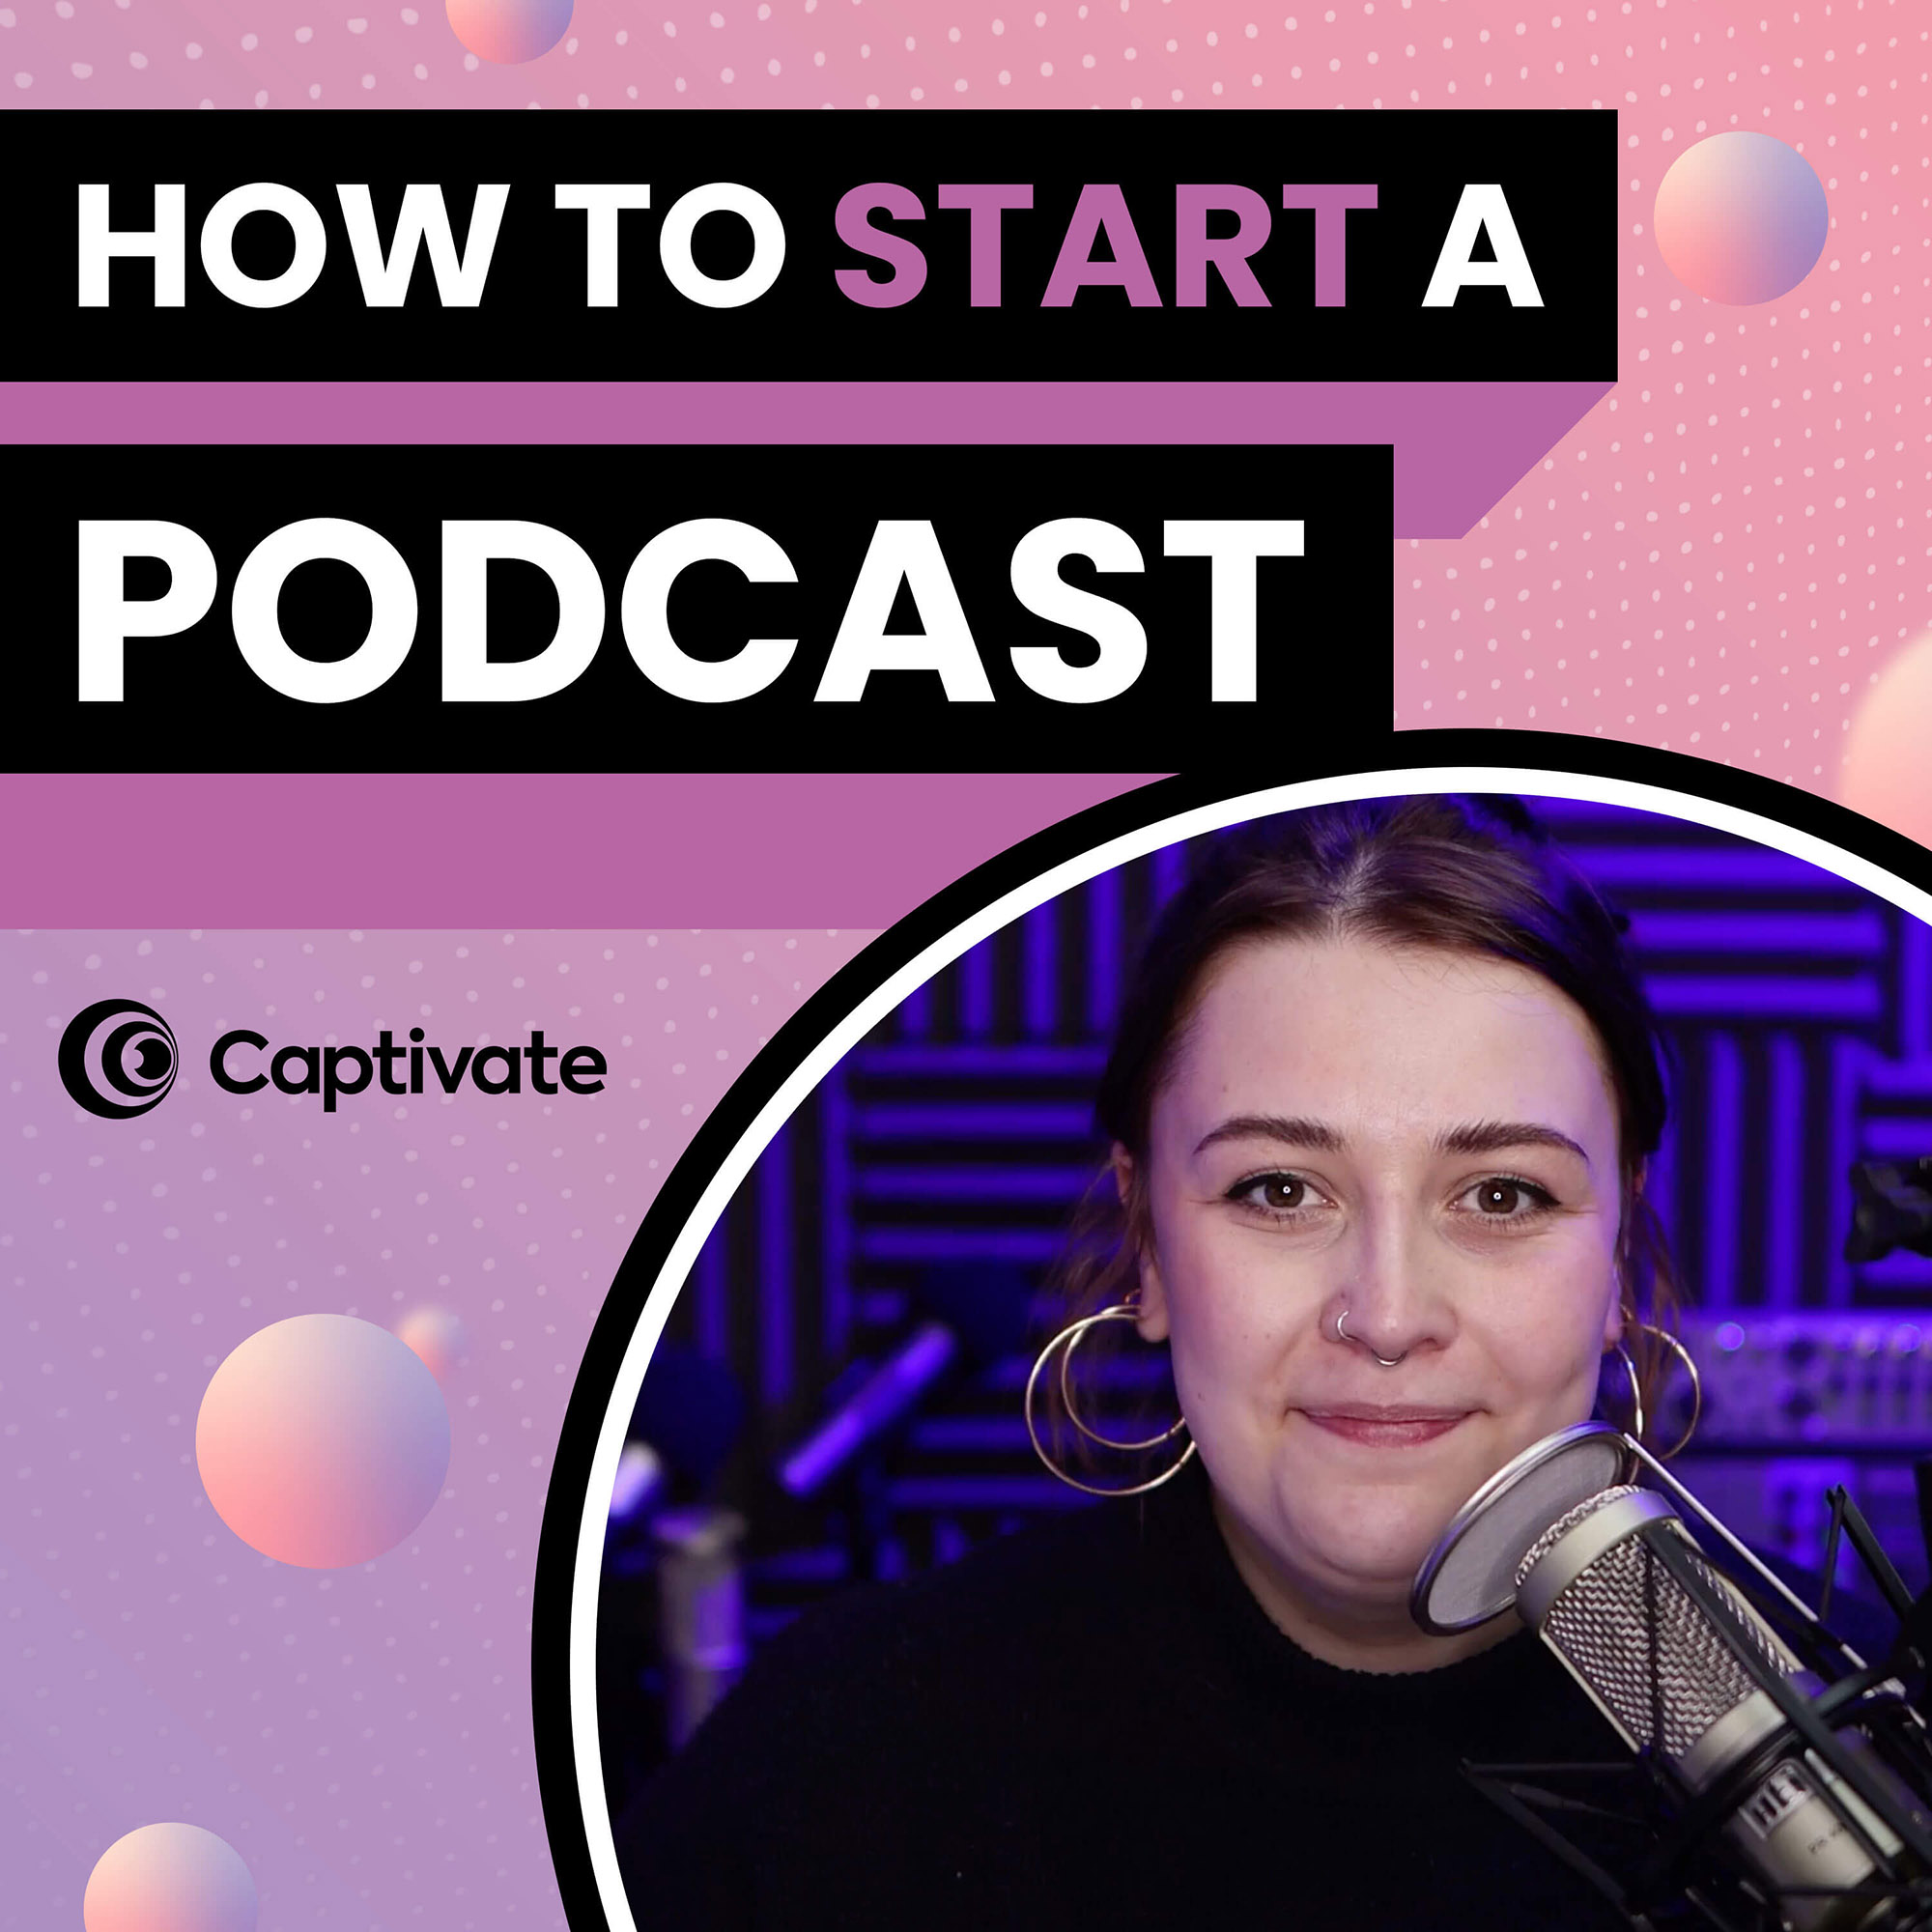 Artwork for podcast How to Start A Podcast [2022 update]